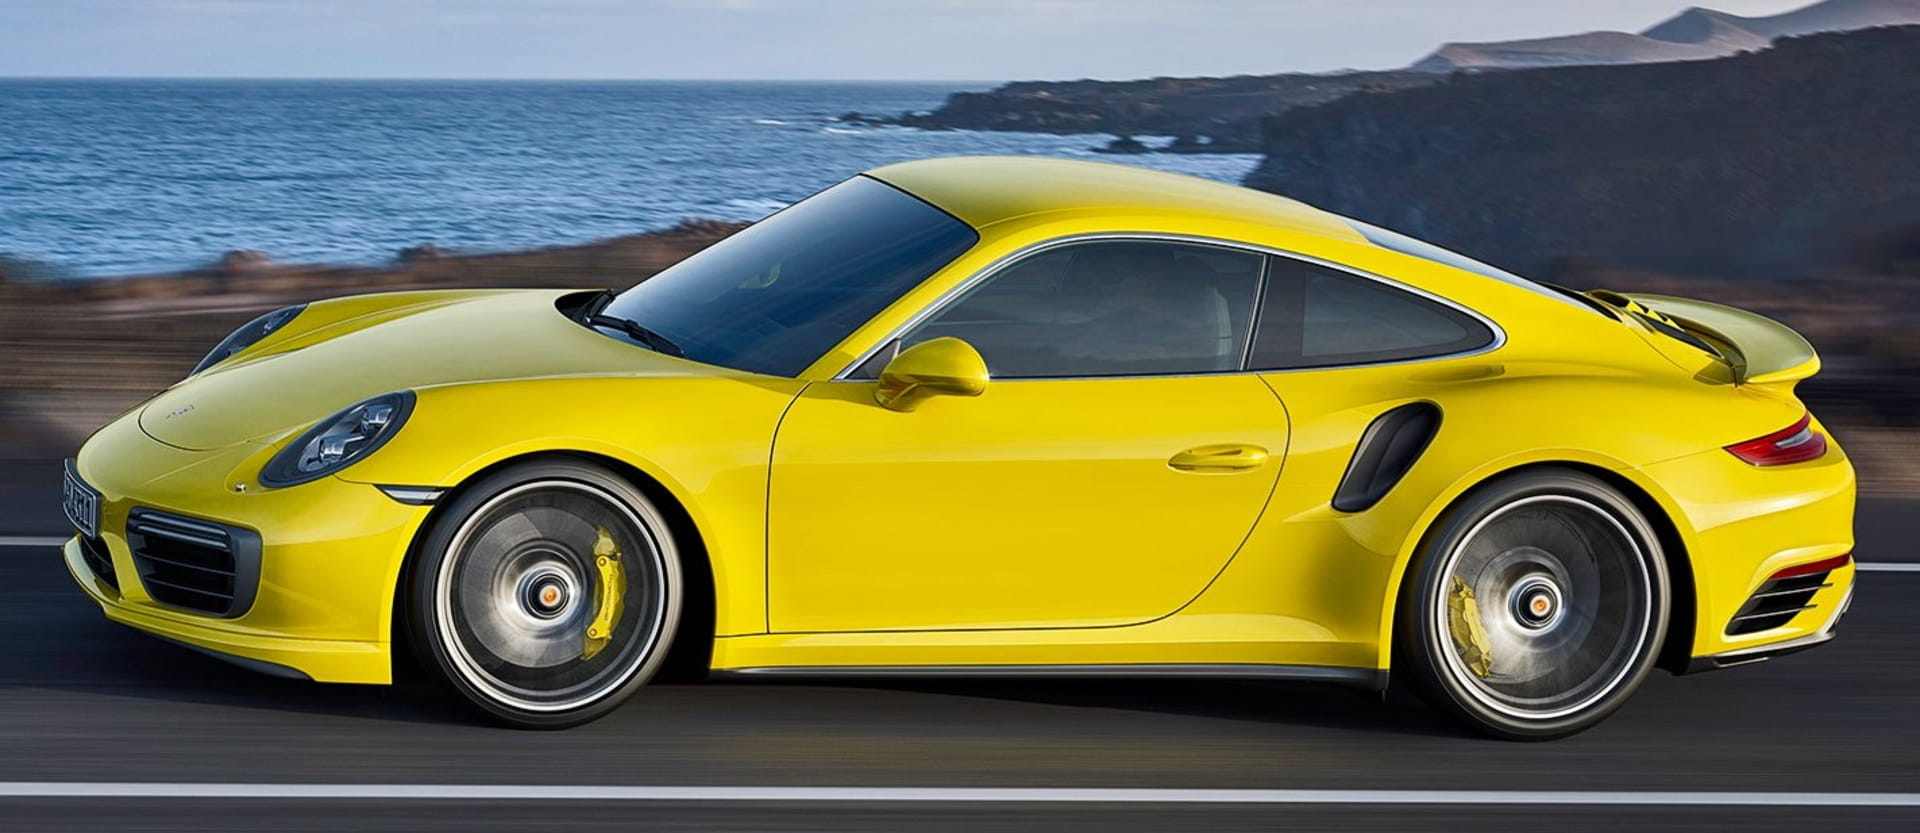 2016 Porsche 911 Turbo is the new king